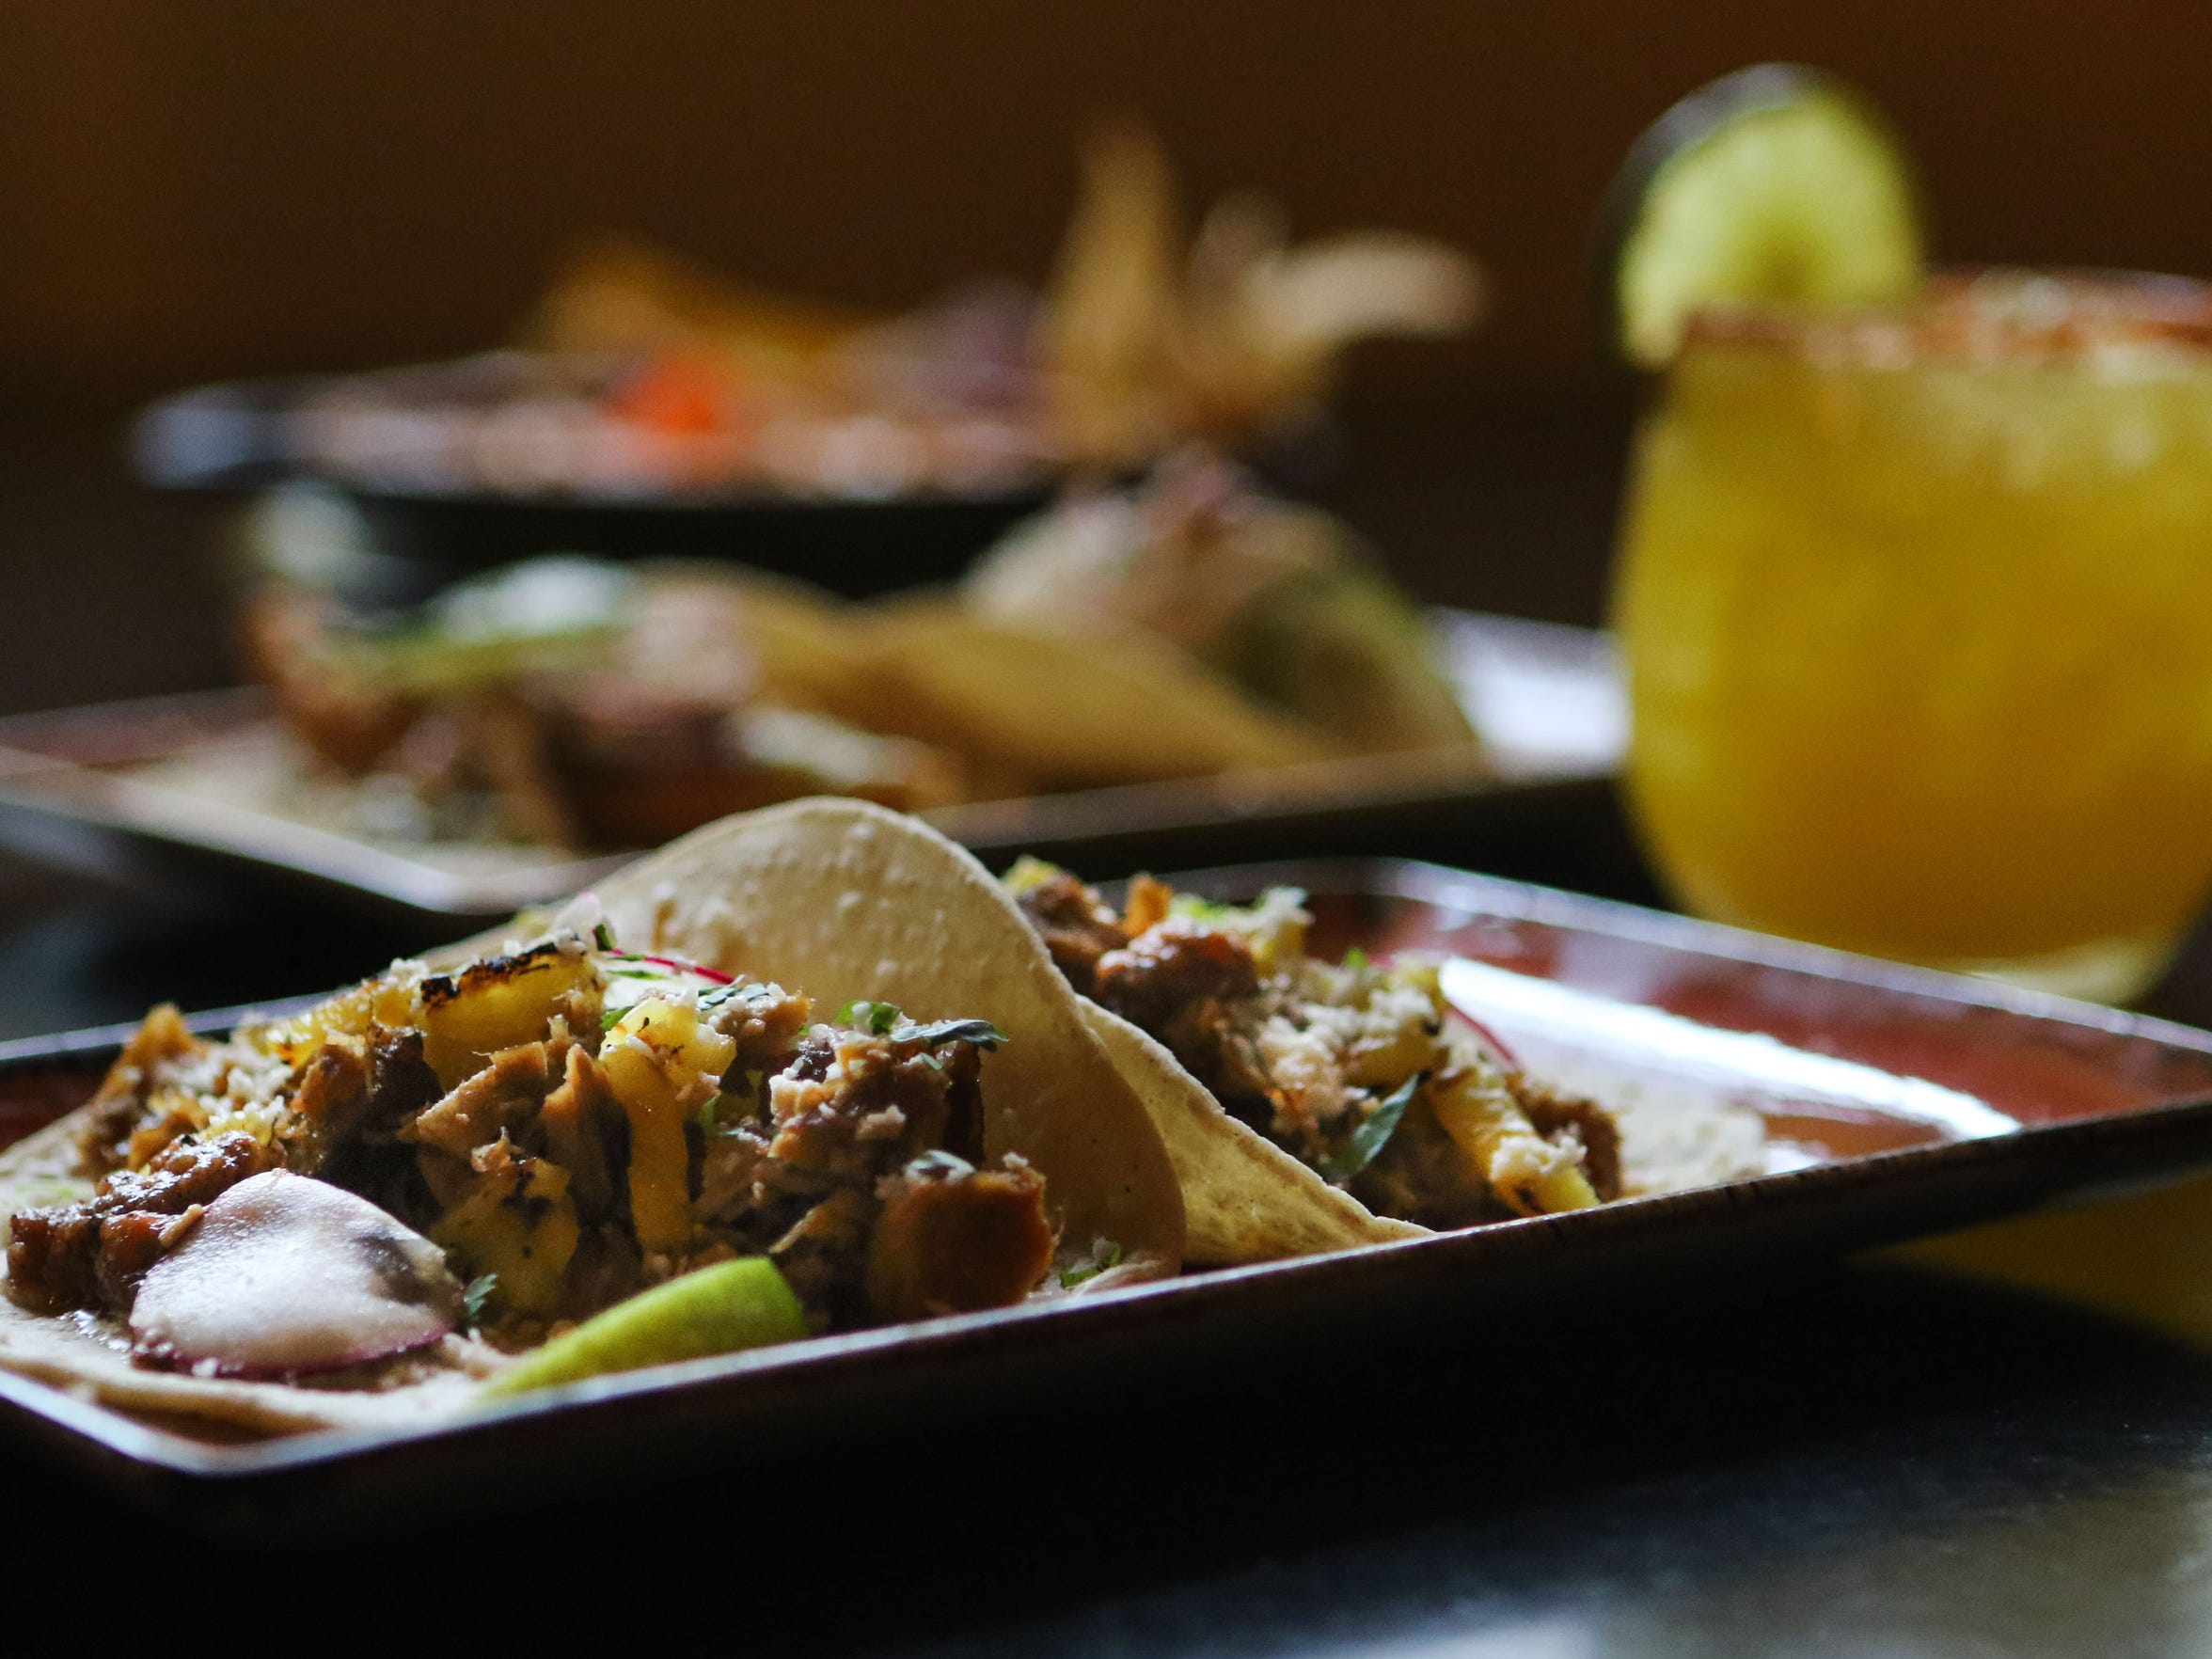 The pork carnitas tacos at Cocina Lolo in Wilmington, one of the participating restaurants in Delaware Dines Out.